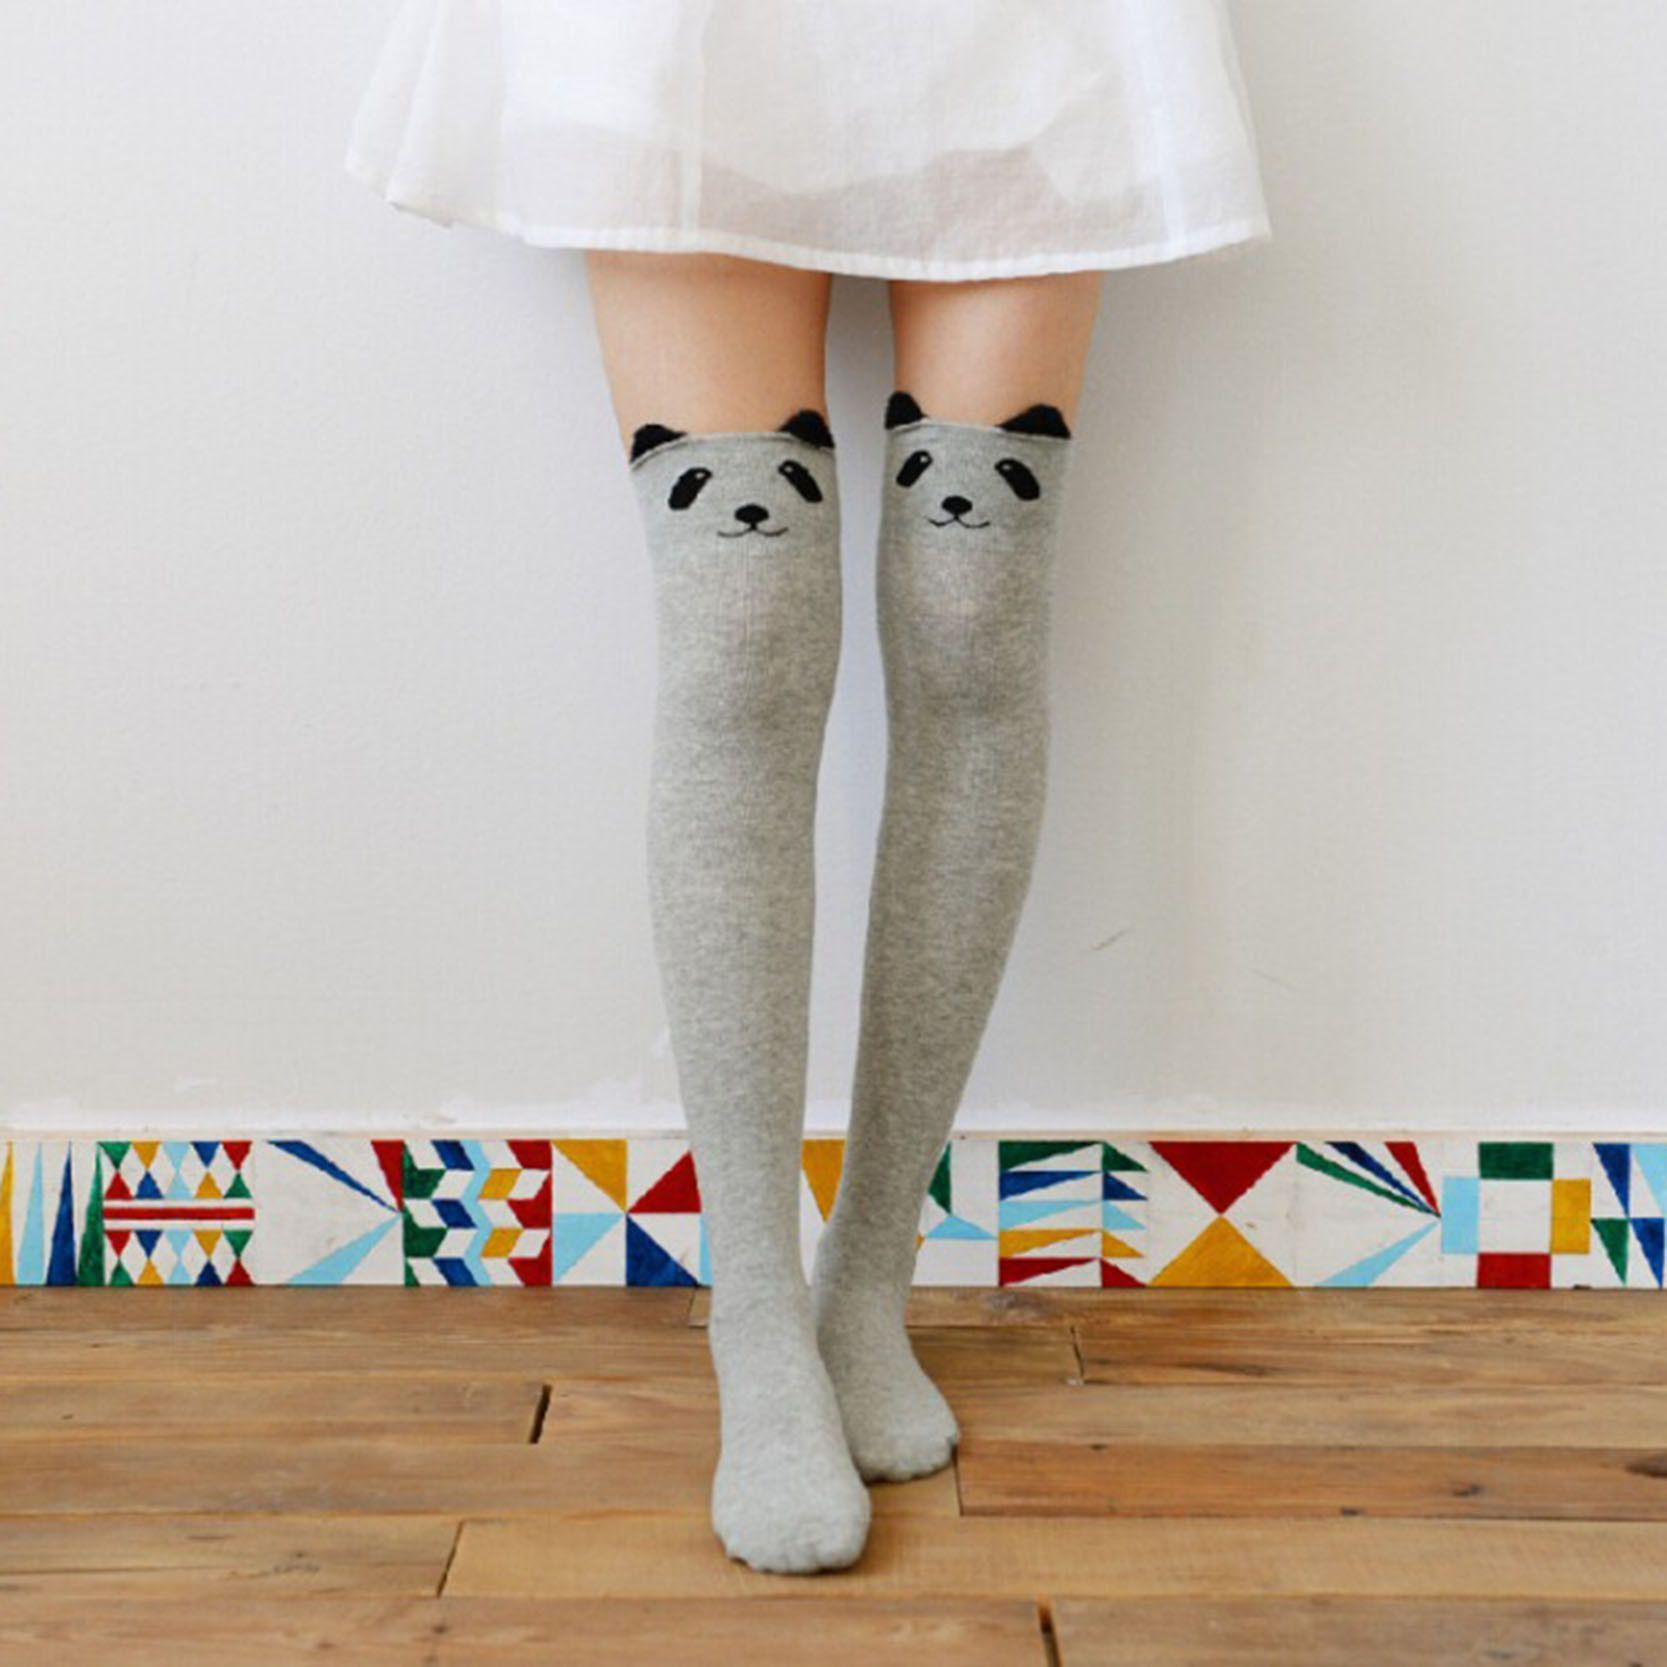 Hot Sale Girls Lovely Animal High Over The Knee Socks Multicolor New Fashion 5Colors Long Cotton Stockings For Women